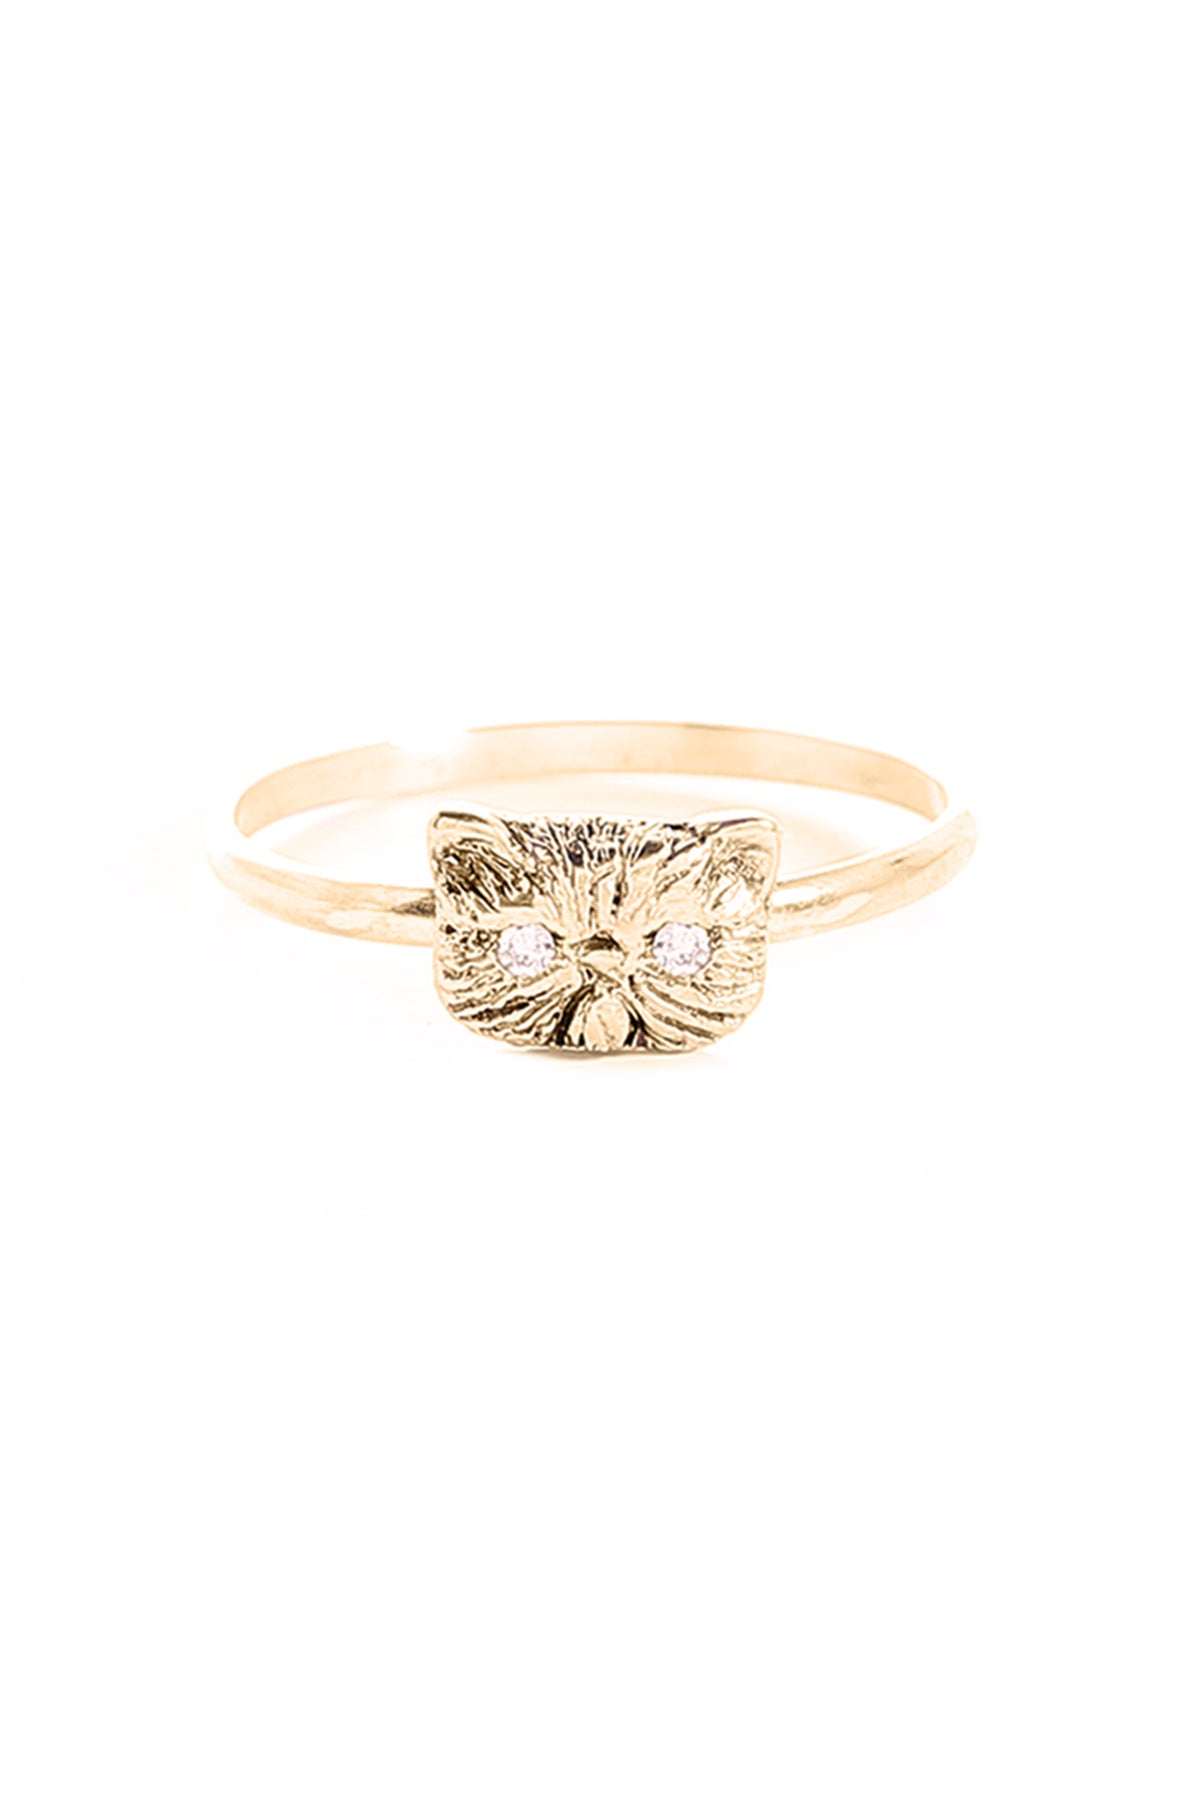 Image of PONYO CAT RING WITH DIAMOND EYES